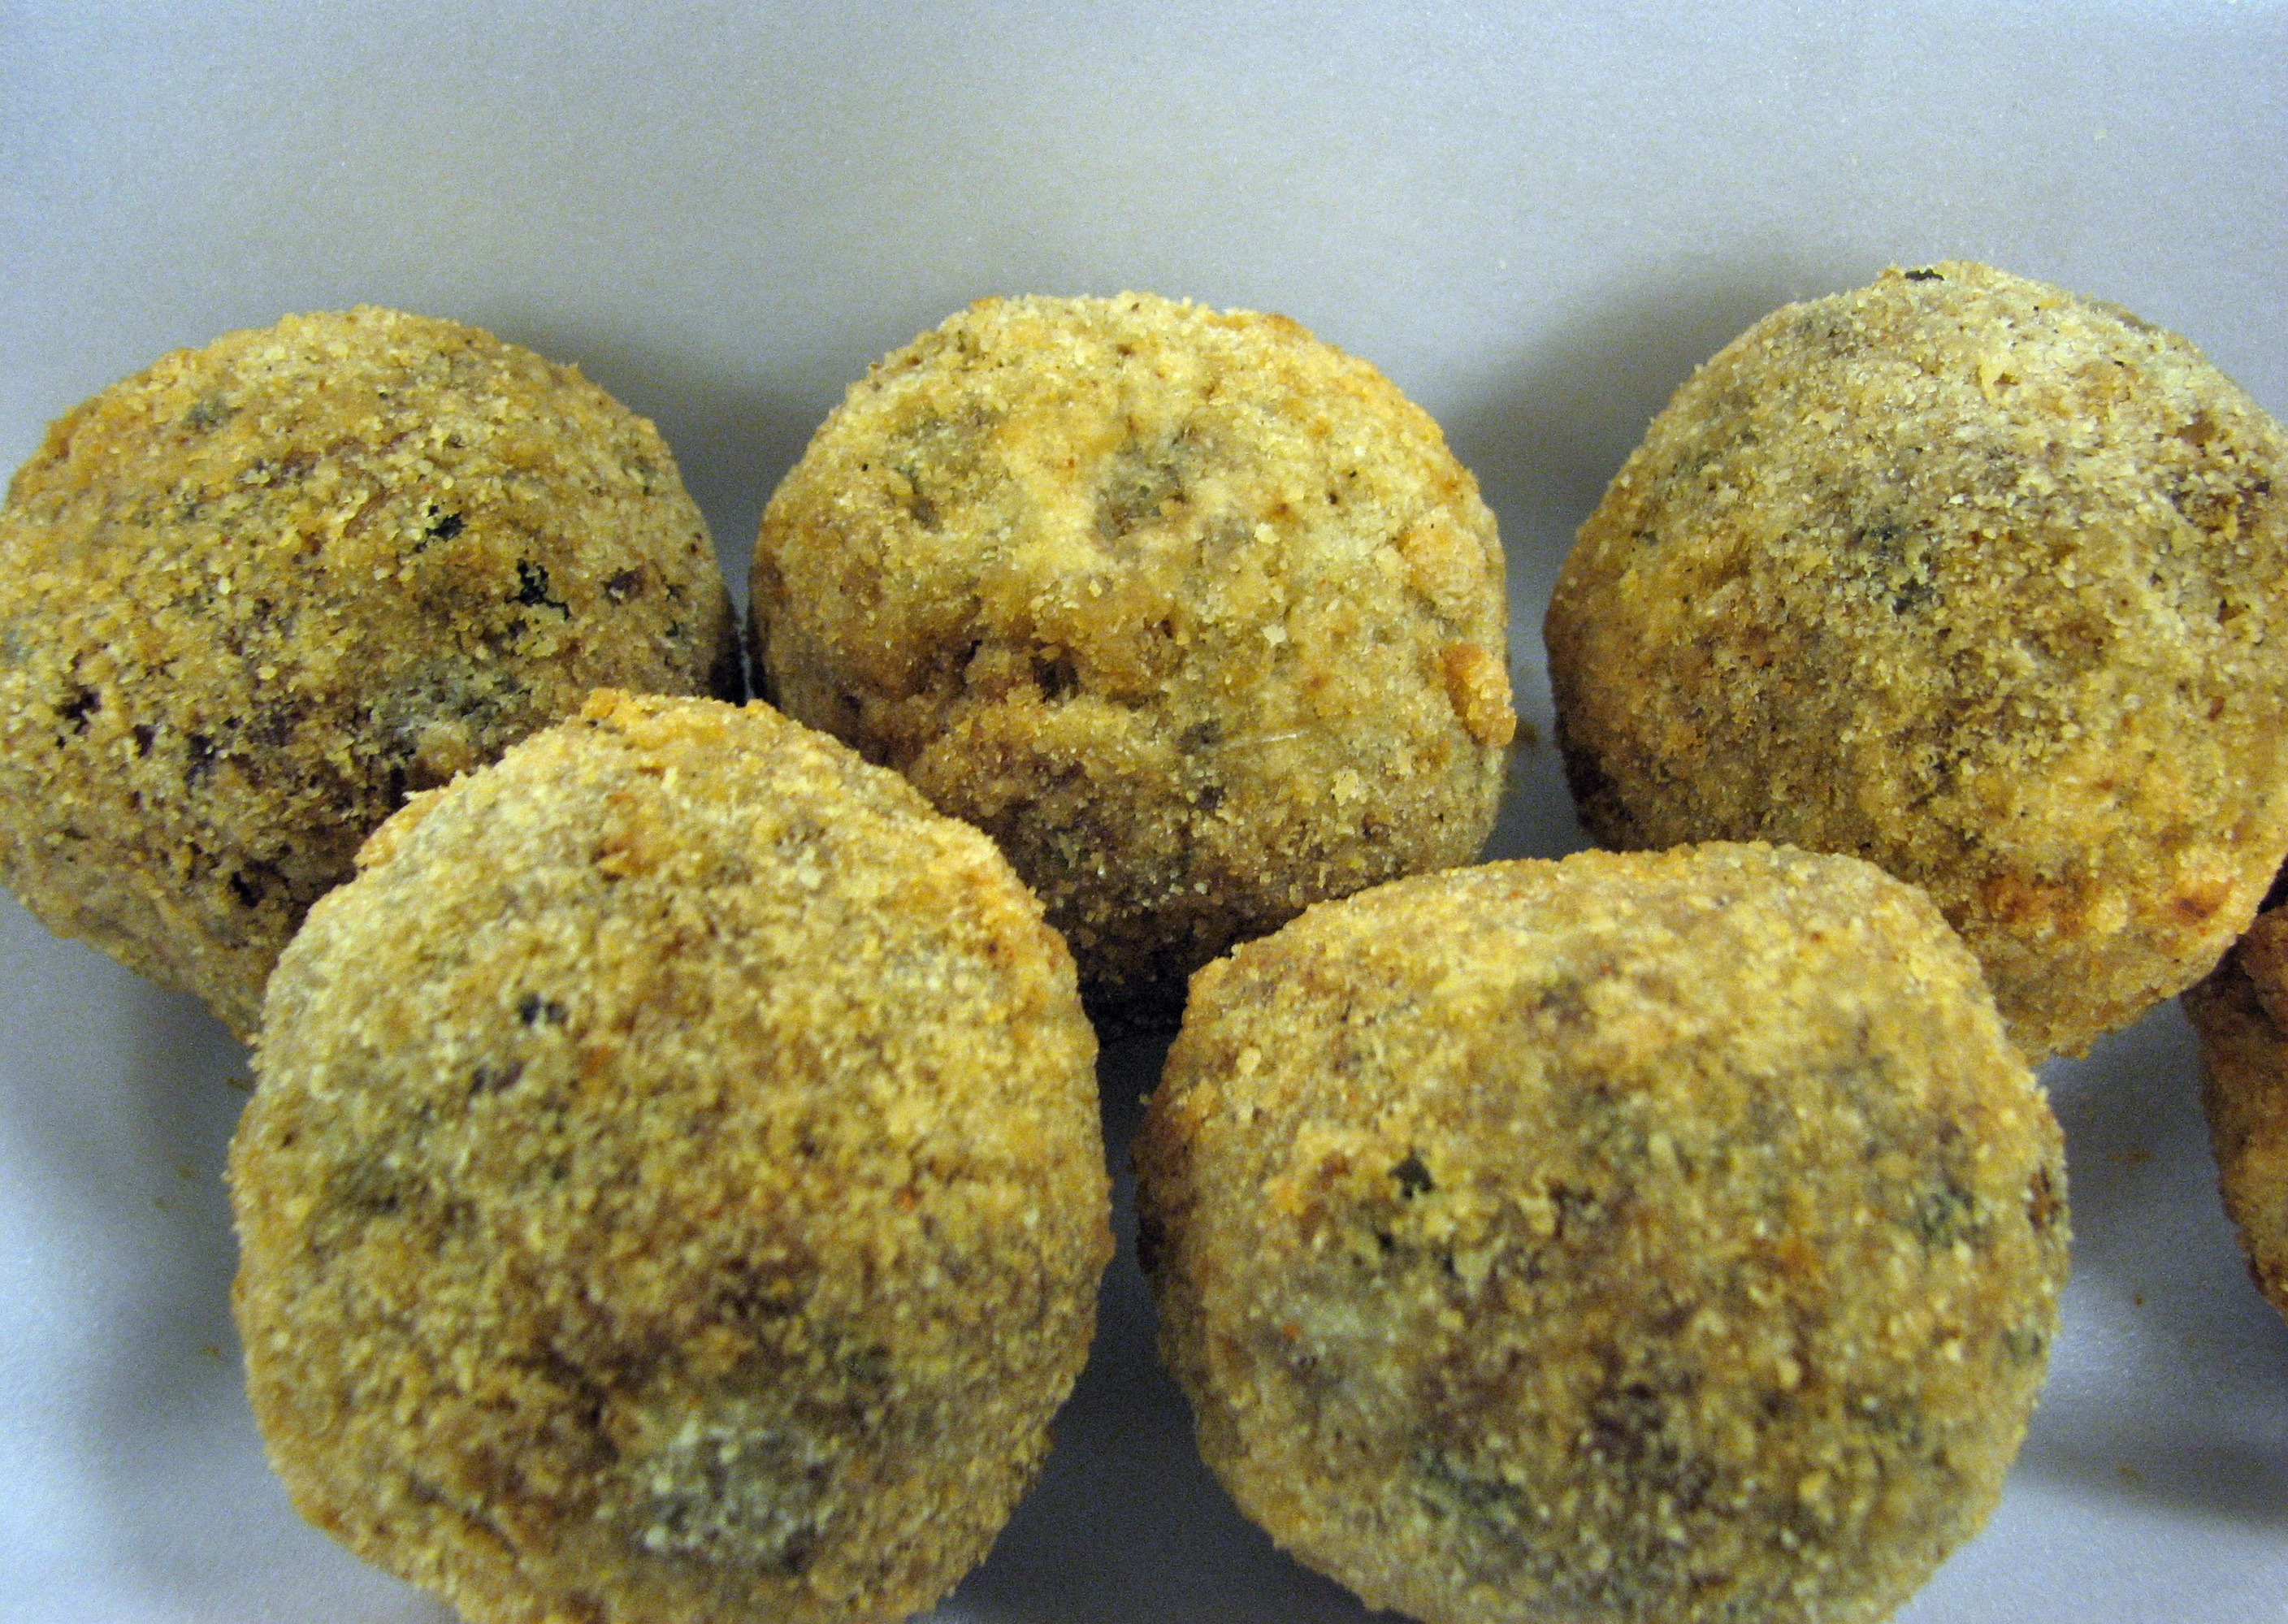 File:Boudin Sausage Balls.jpg - Wikipedia, the free encyclopedia